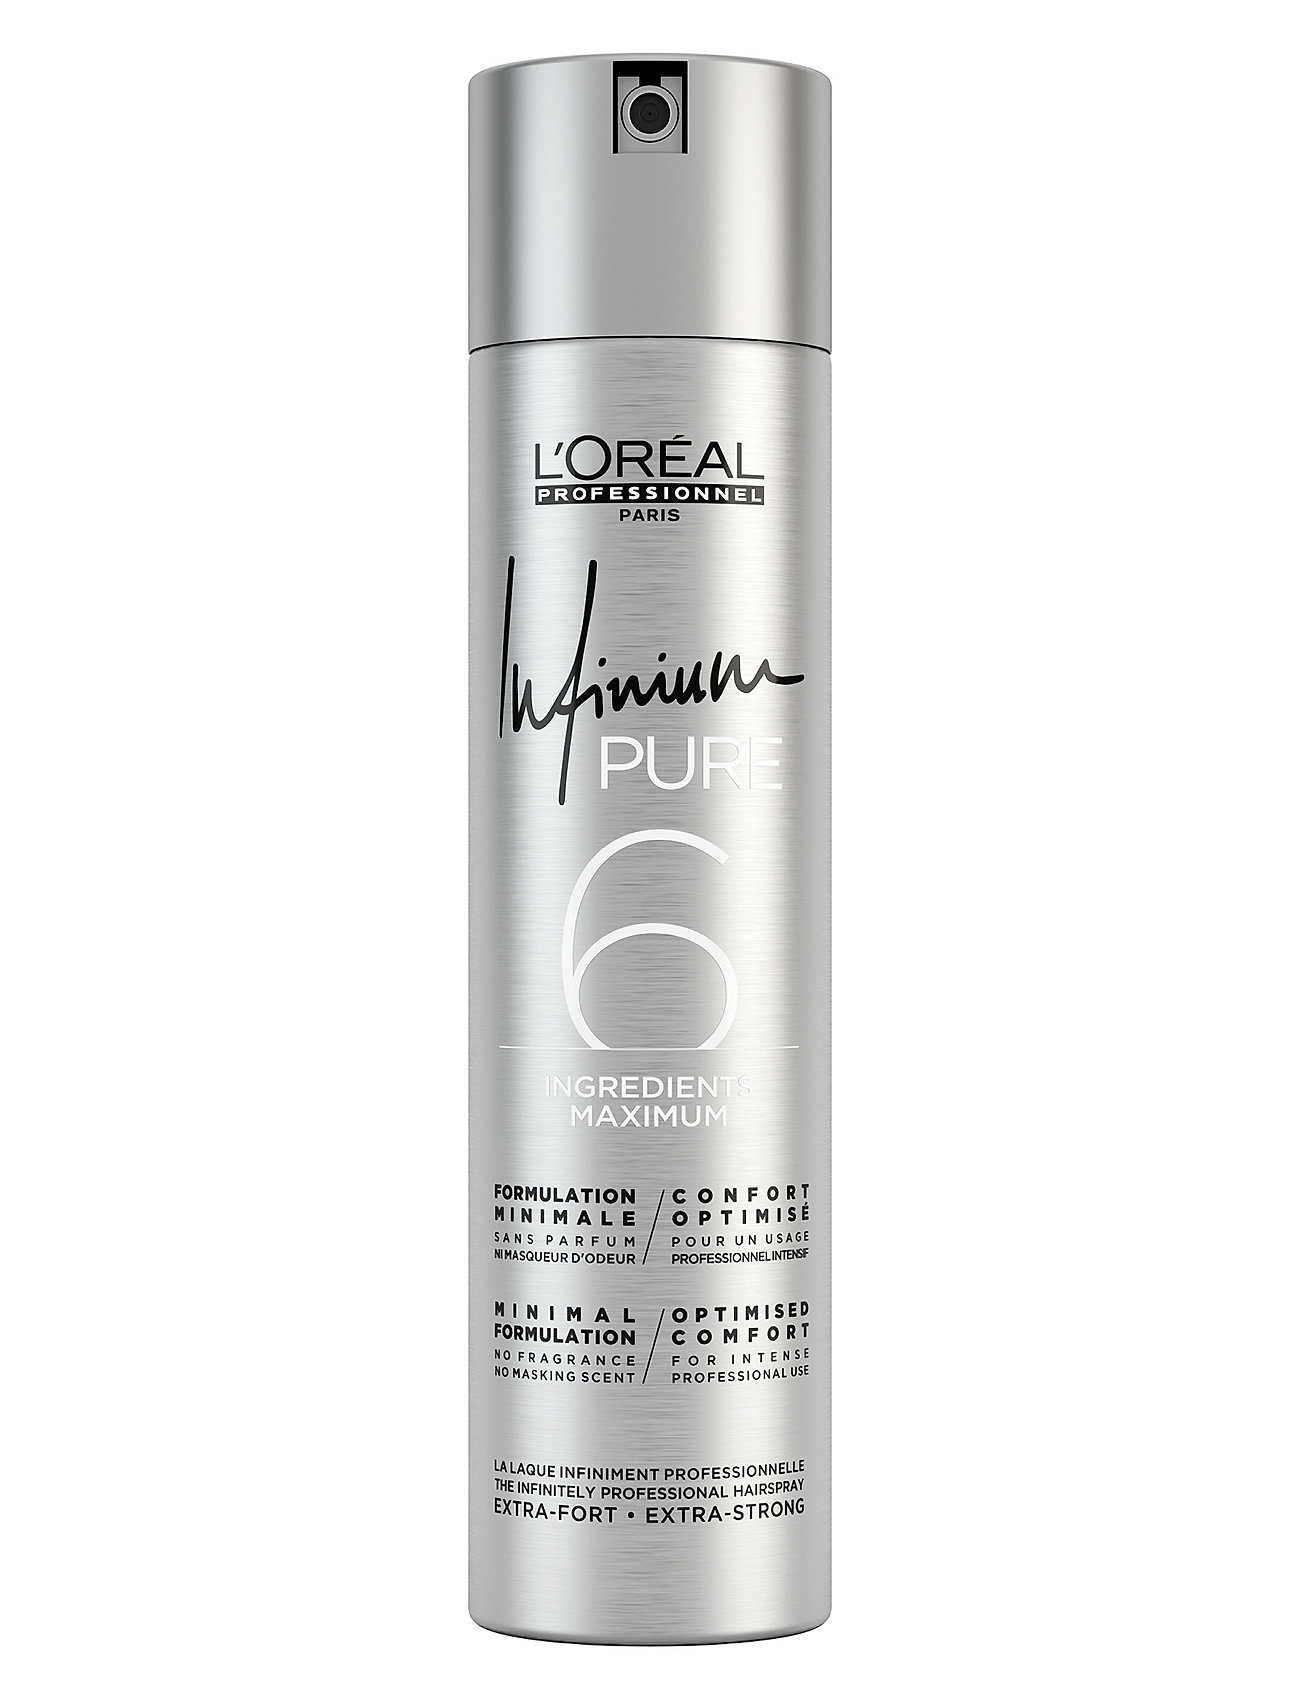 L'Oréal Professionnel L'Oréal Professionnel Infinium Pure Extra Strong - CLEAR